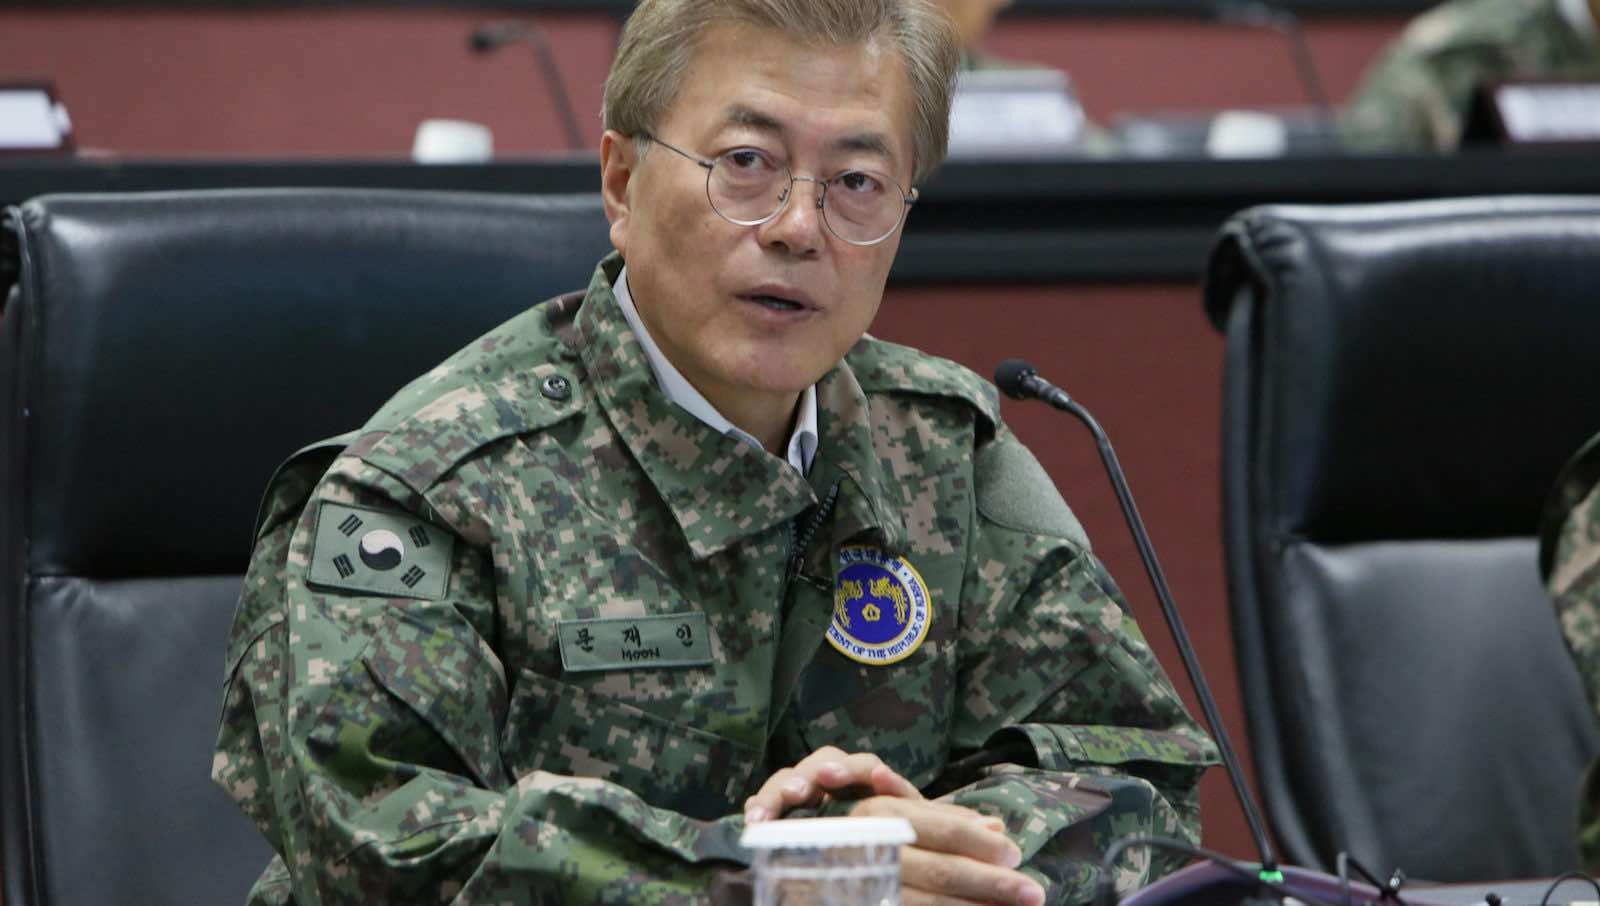 South Korean President Moon Jae-in during a visit to the US Army garrison at Yongsan in June 2017  (Photo: UNC - CFC - USFK/Flickr)